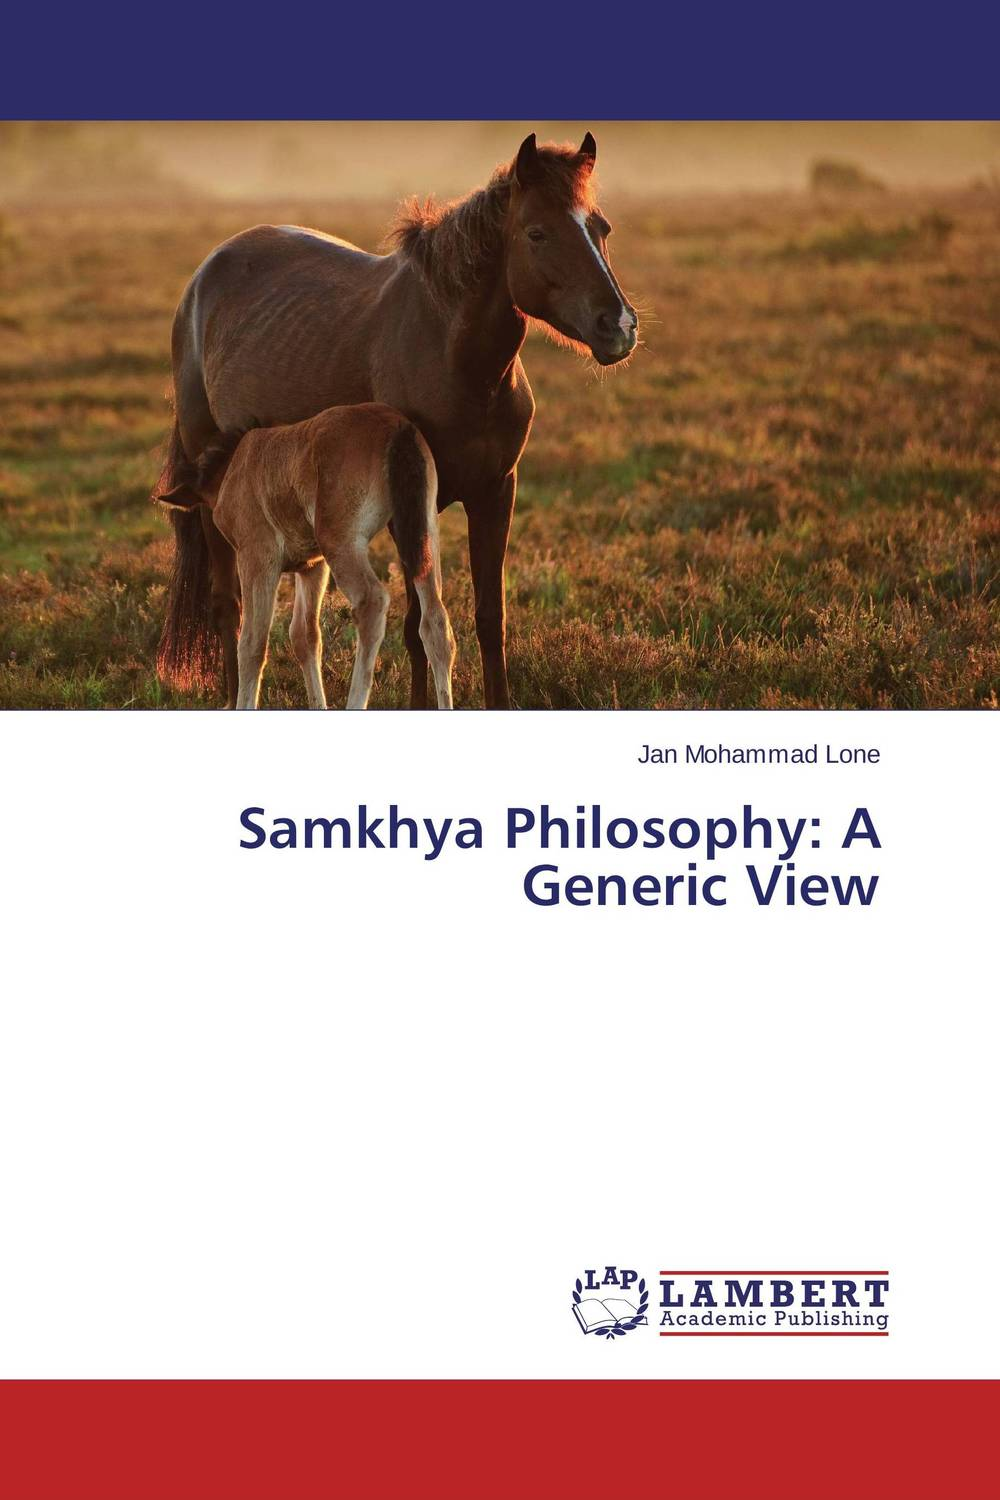 Samkhya Philosophy: A Generic View